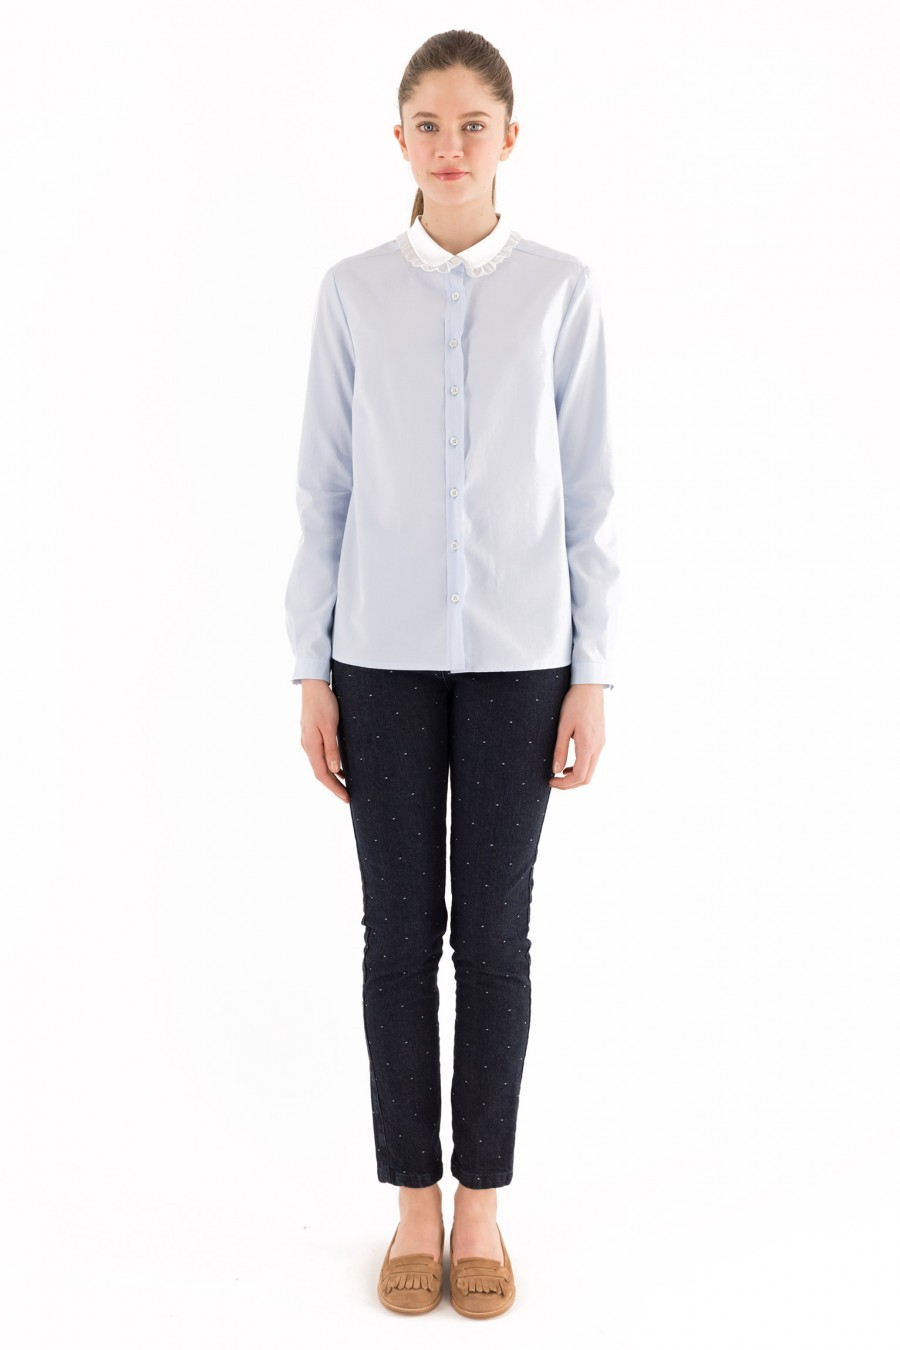 Light Blue shirt bebè collar